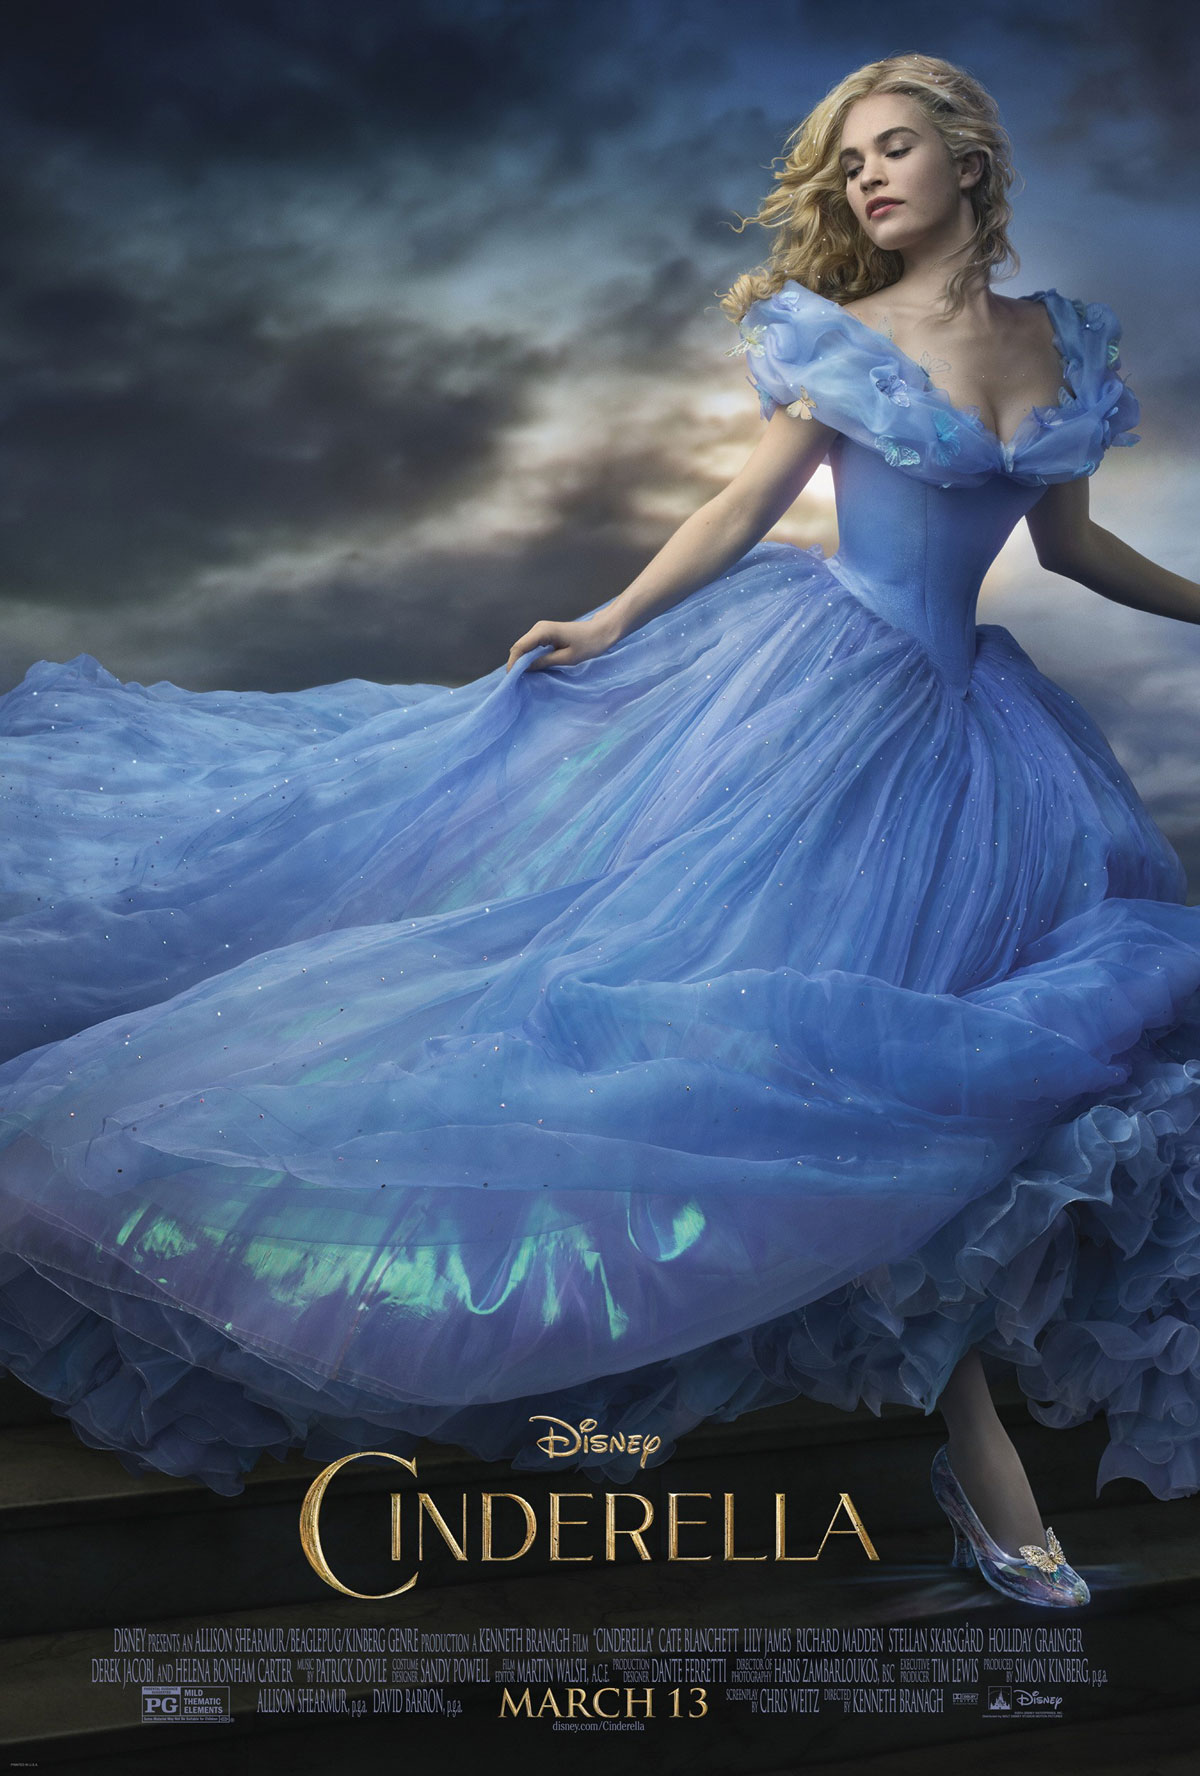 Cinderella 2015 News Clips Quotes Trivia Easter